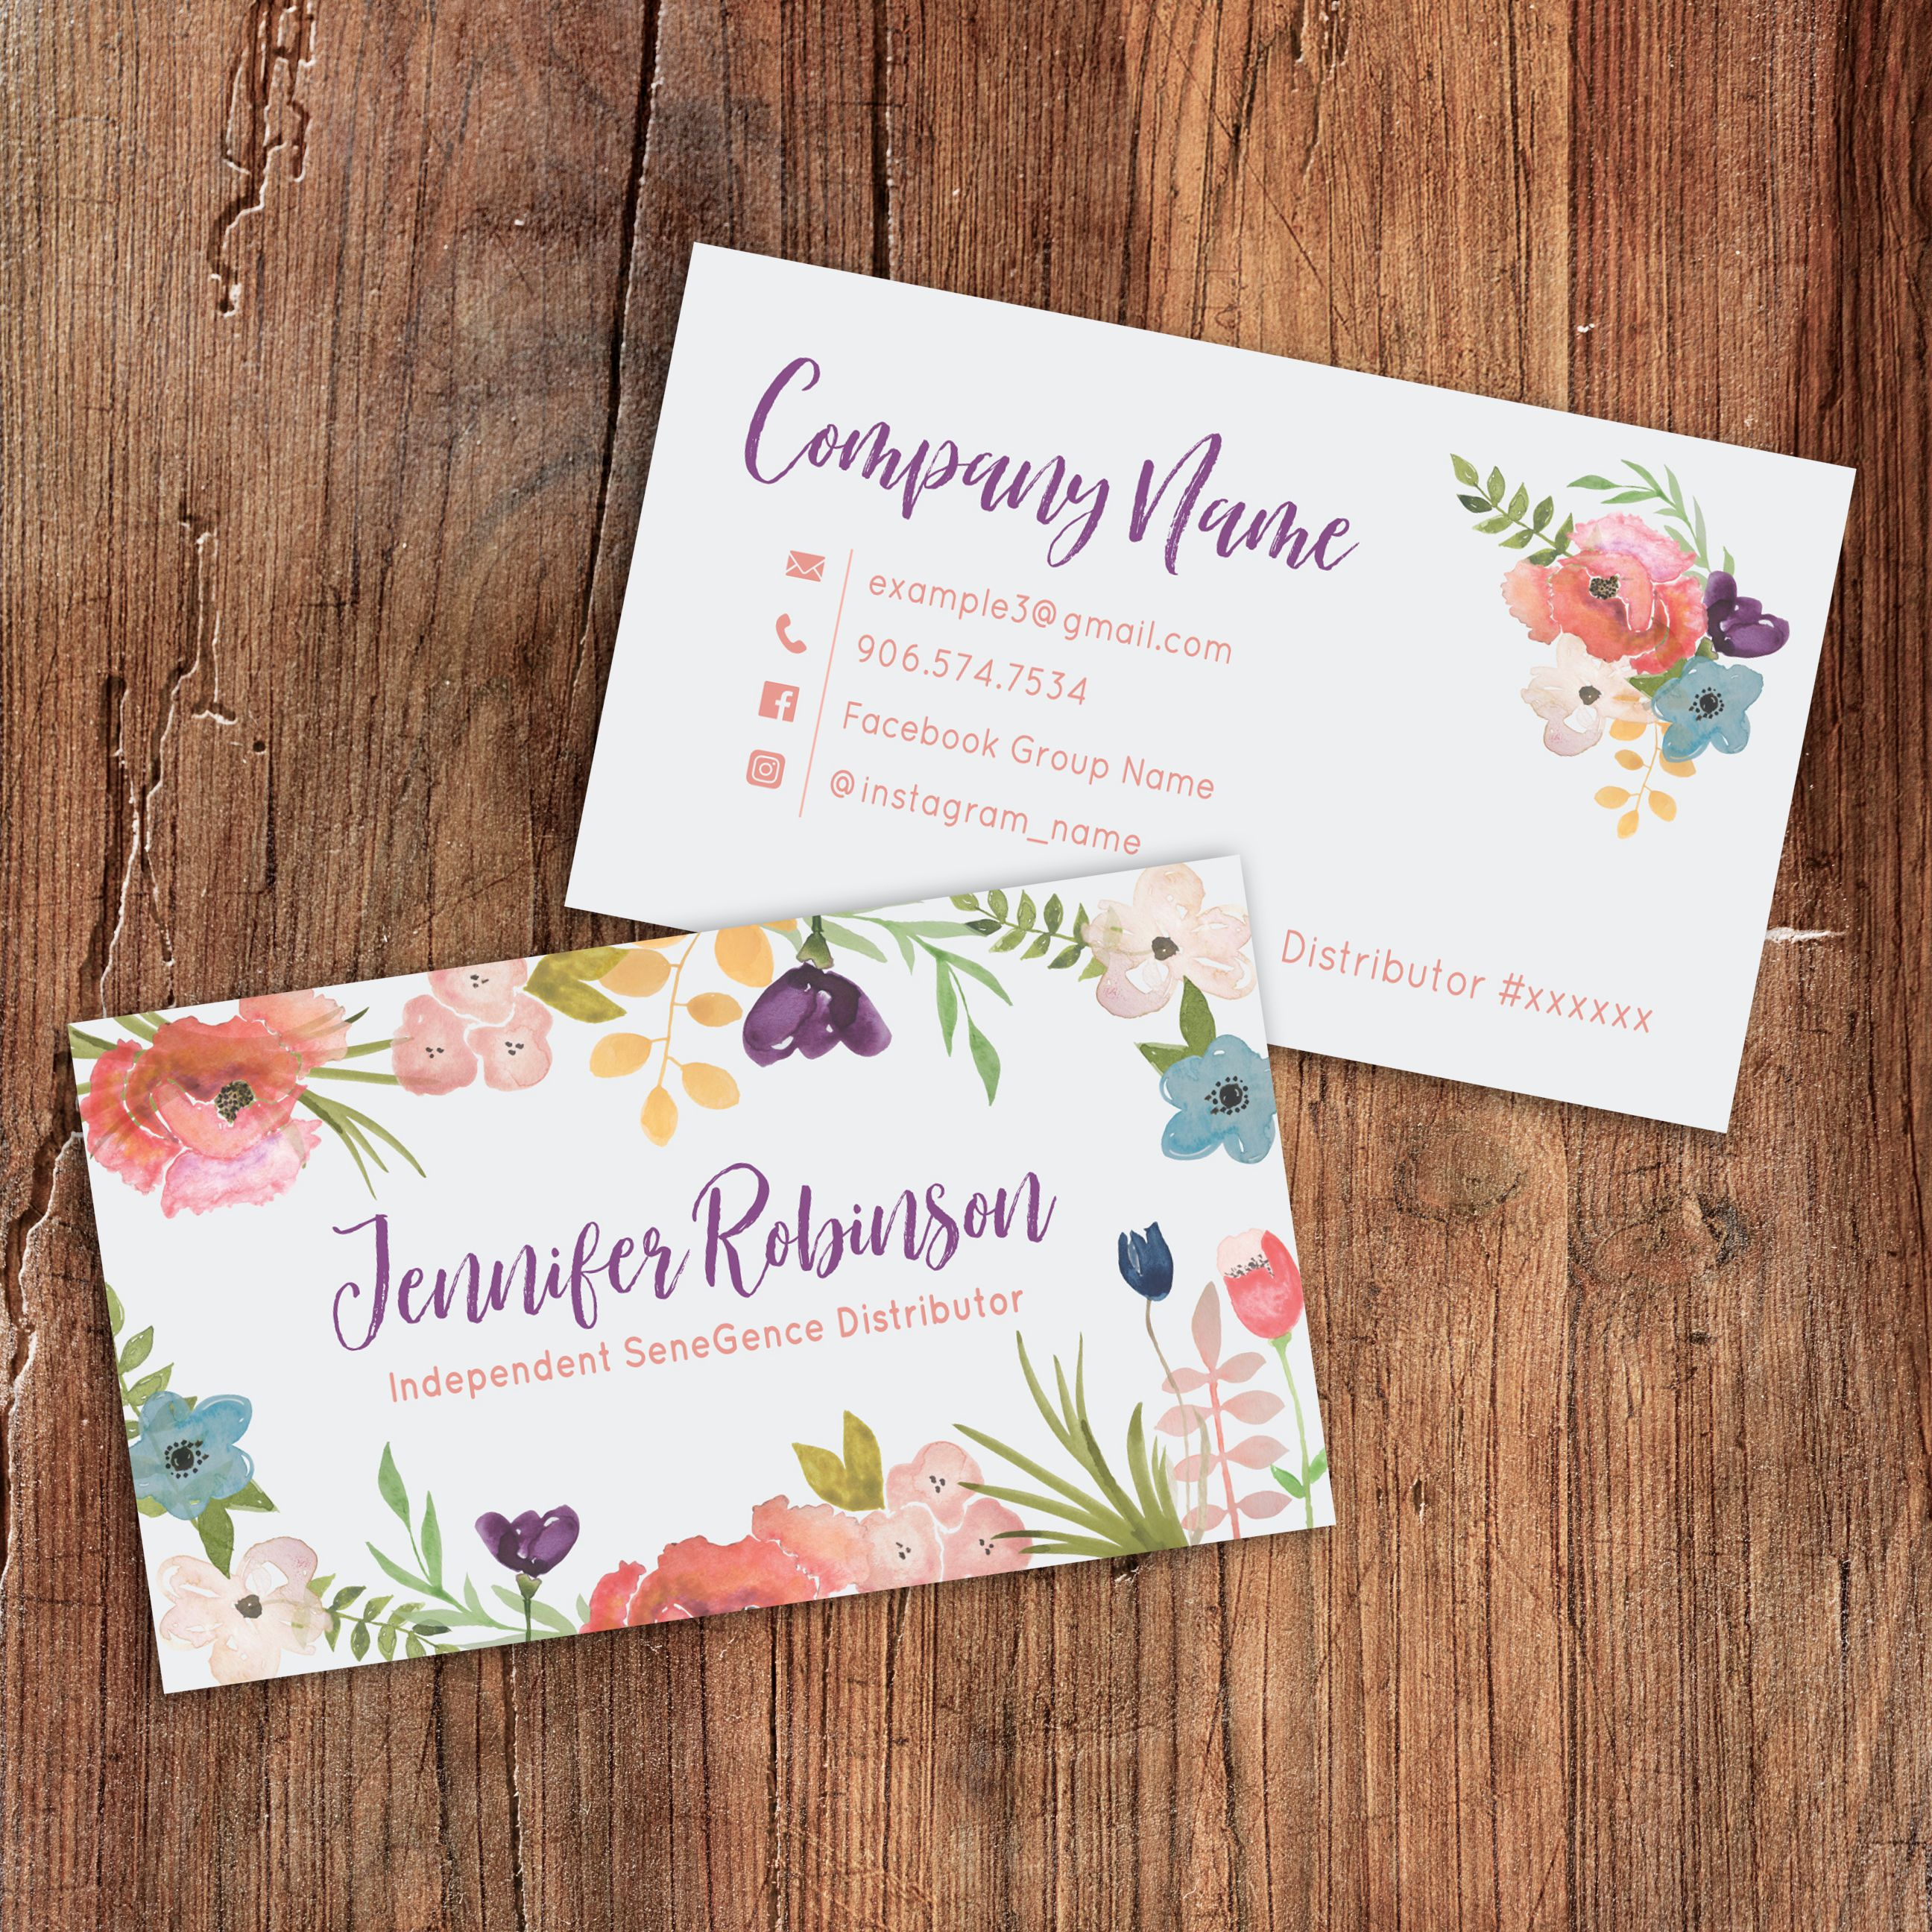 Simply Sapphire – LipSense Business Card Design sold on Etsy ...